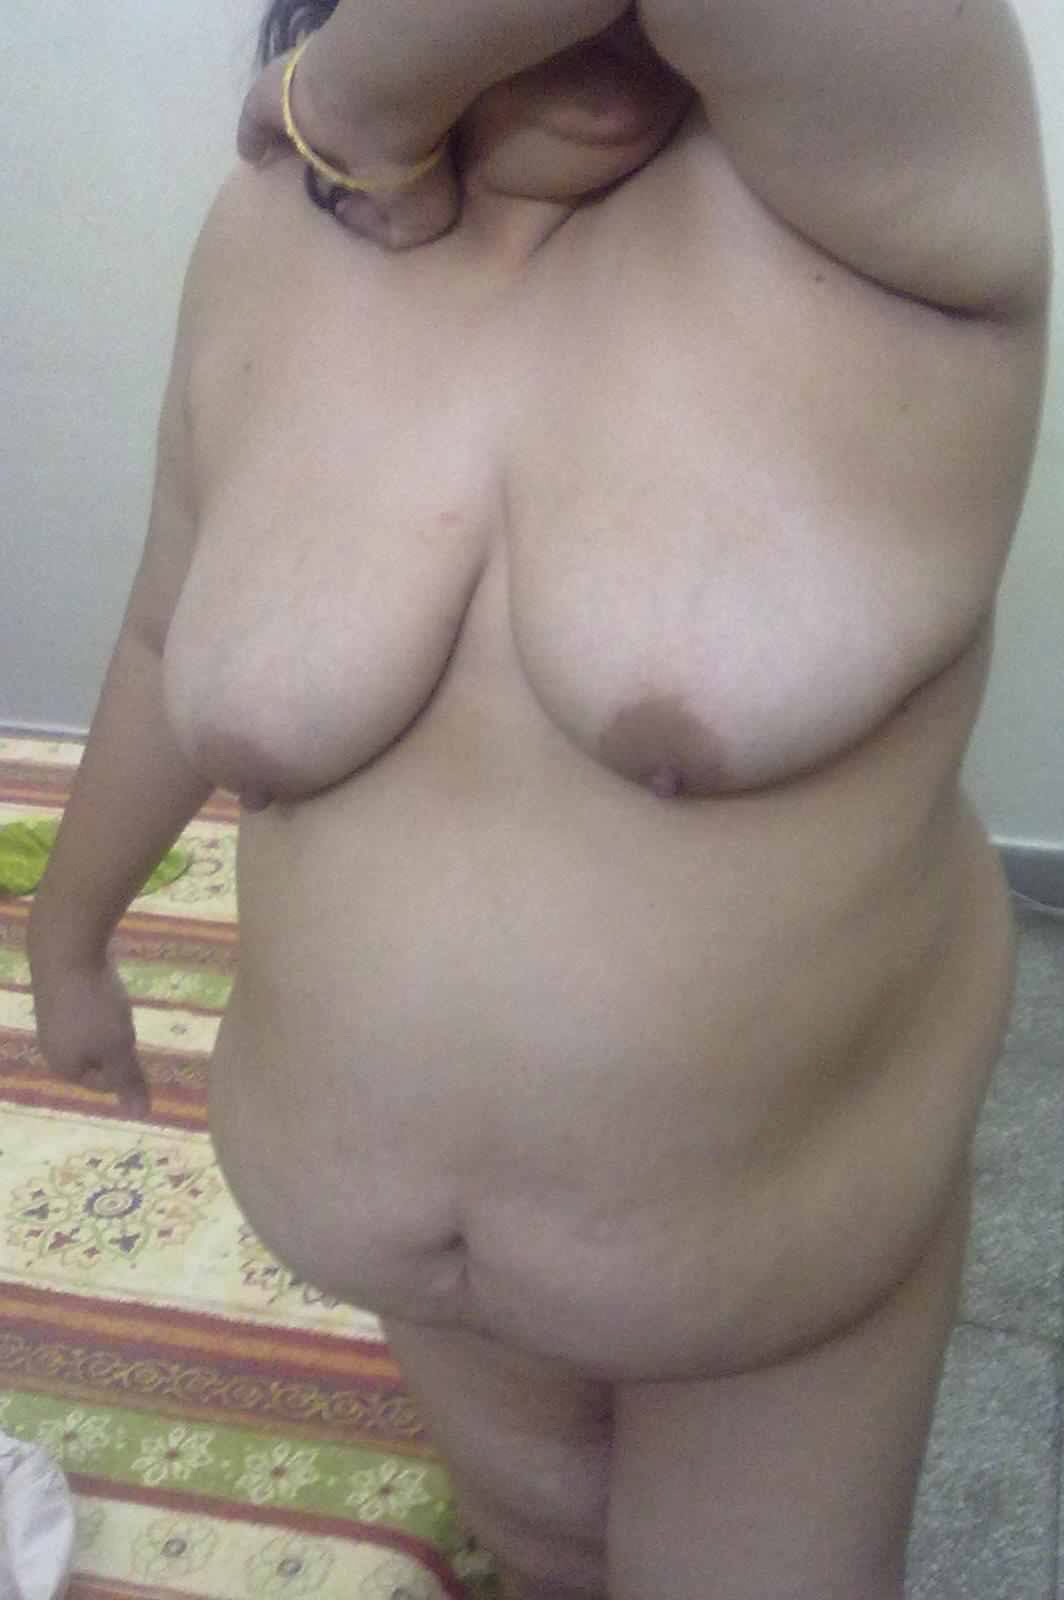 Pakistani Xnxx Desi Bhabhi Hot Nude Photo Album Busty -4897